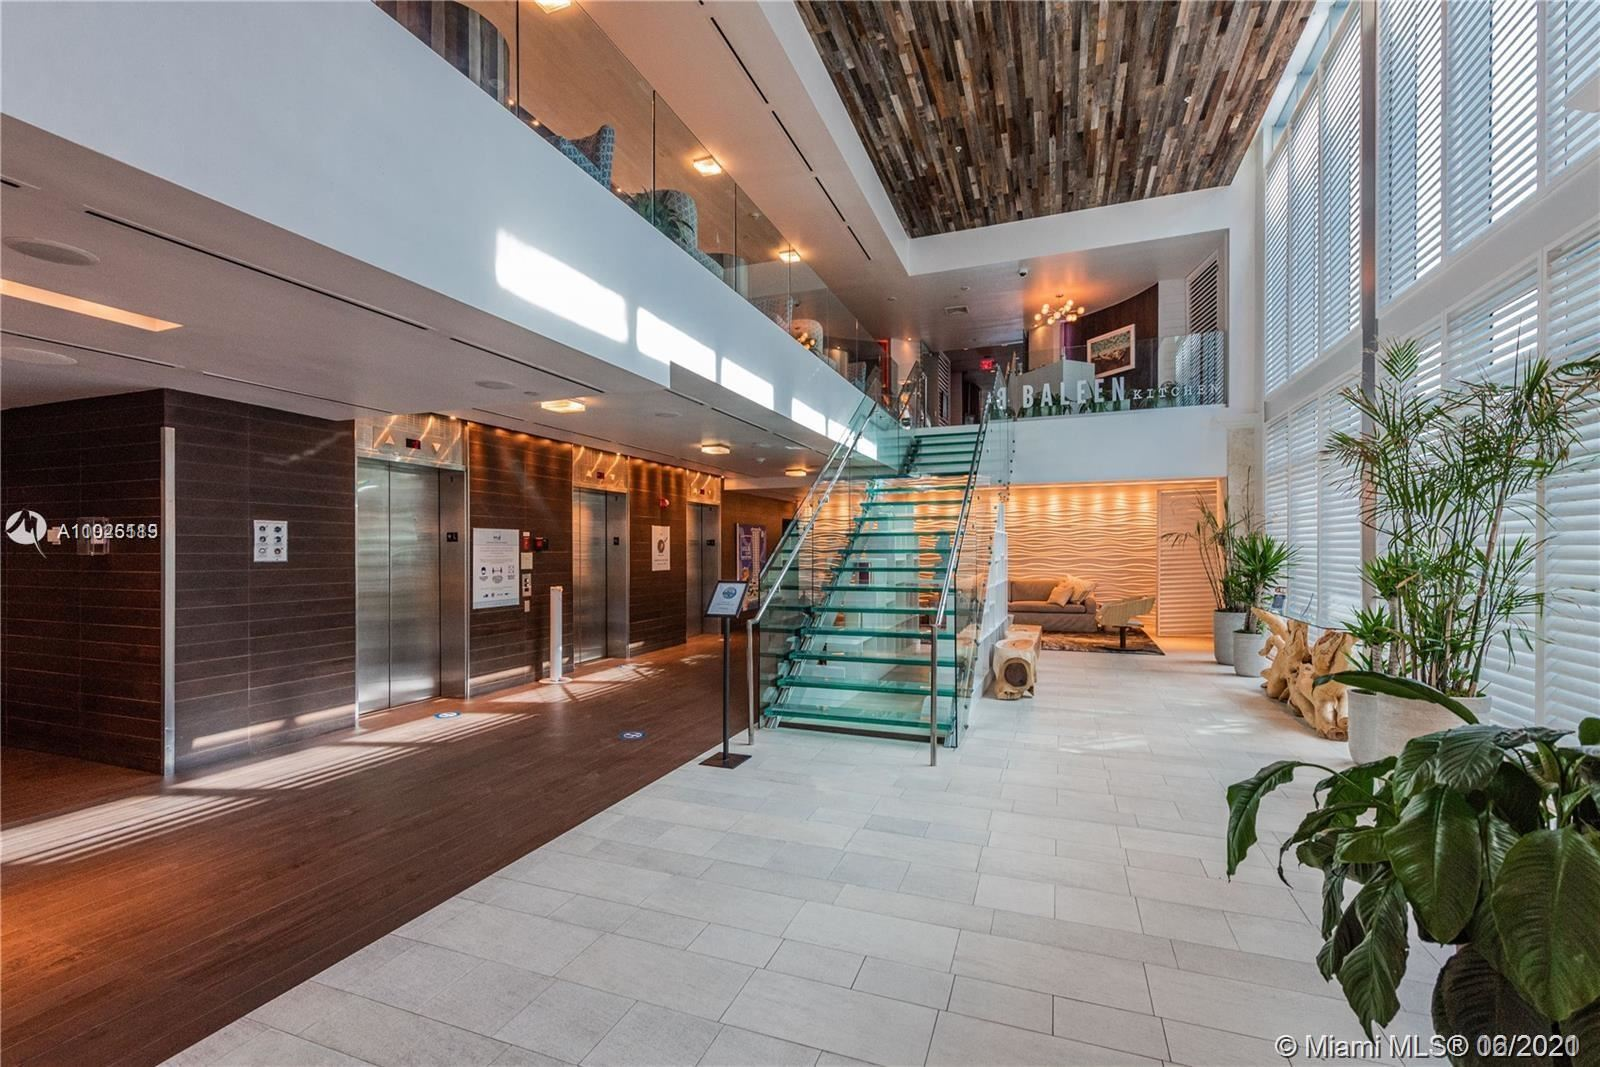 17315 Collins Ave #607A  607B, Sunny Isles, FL 33160 - #: A11026119